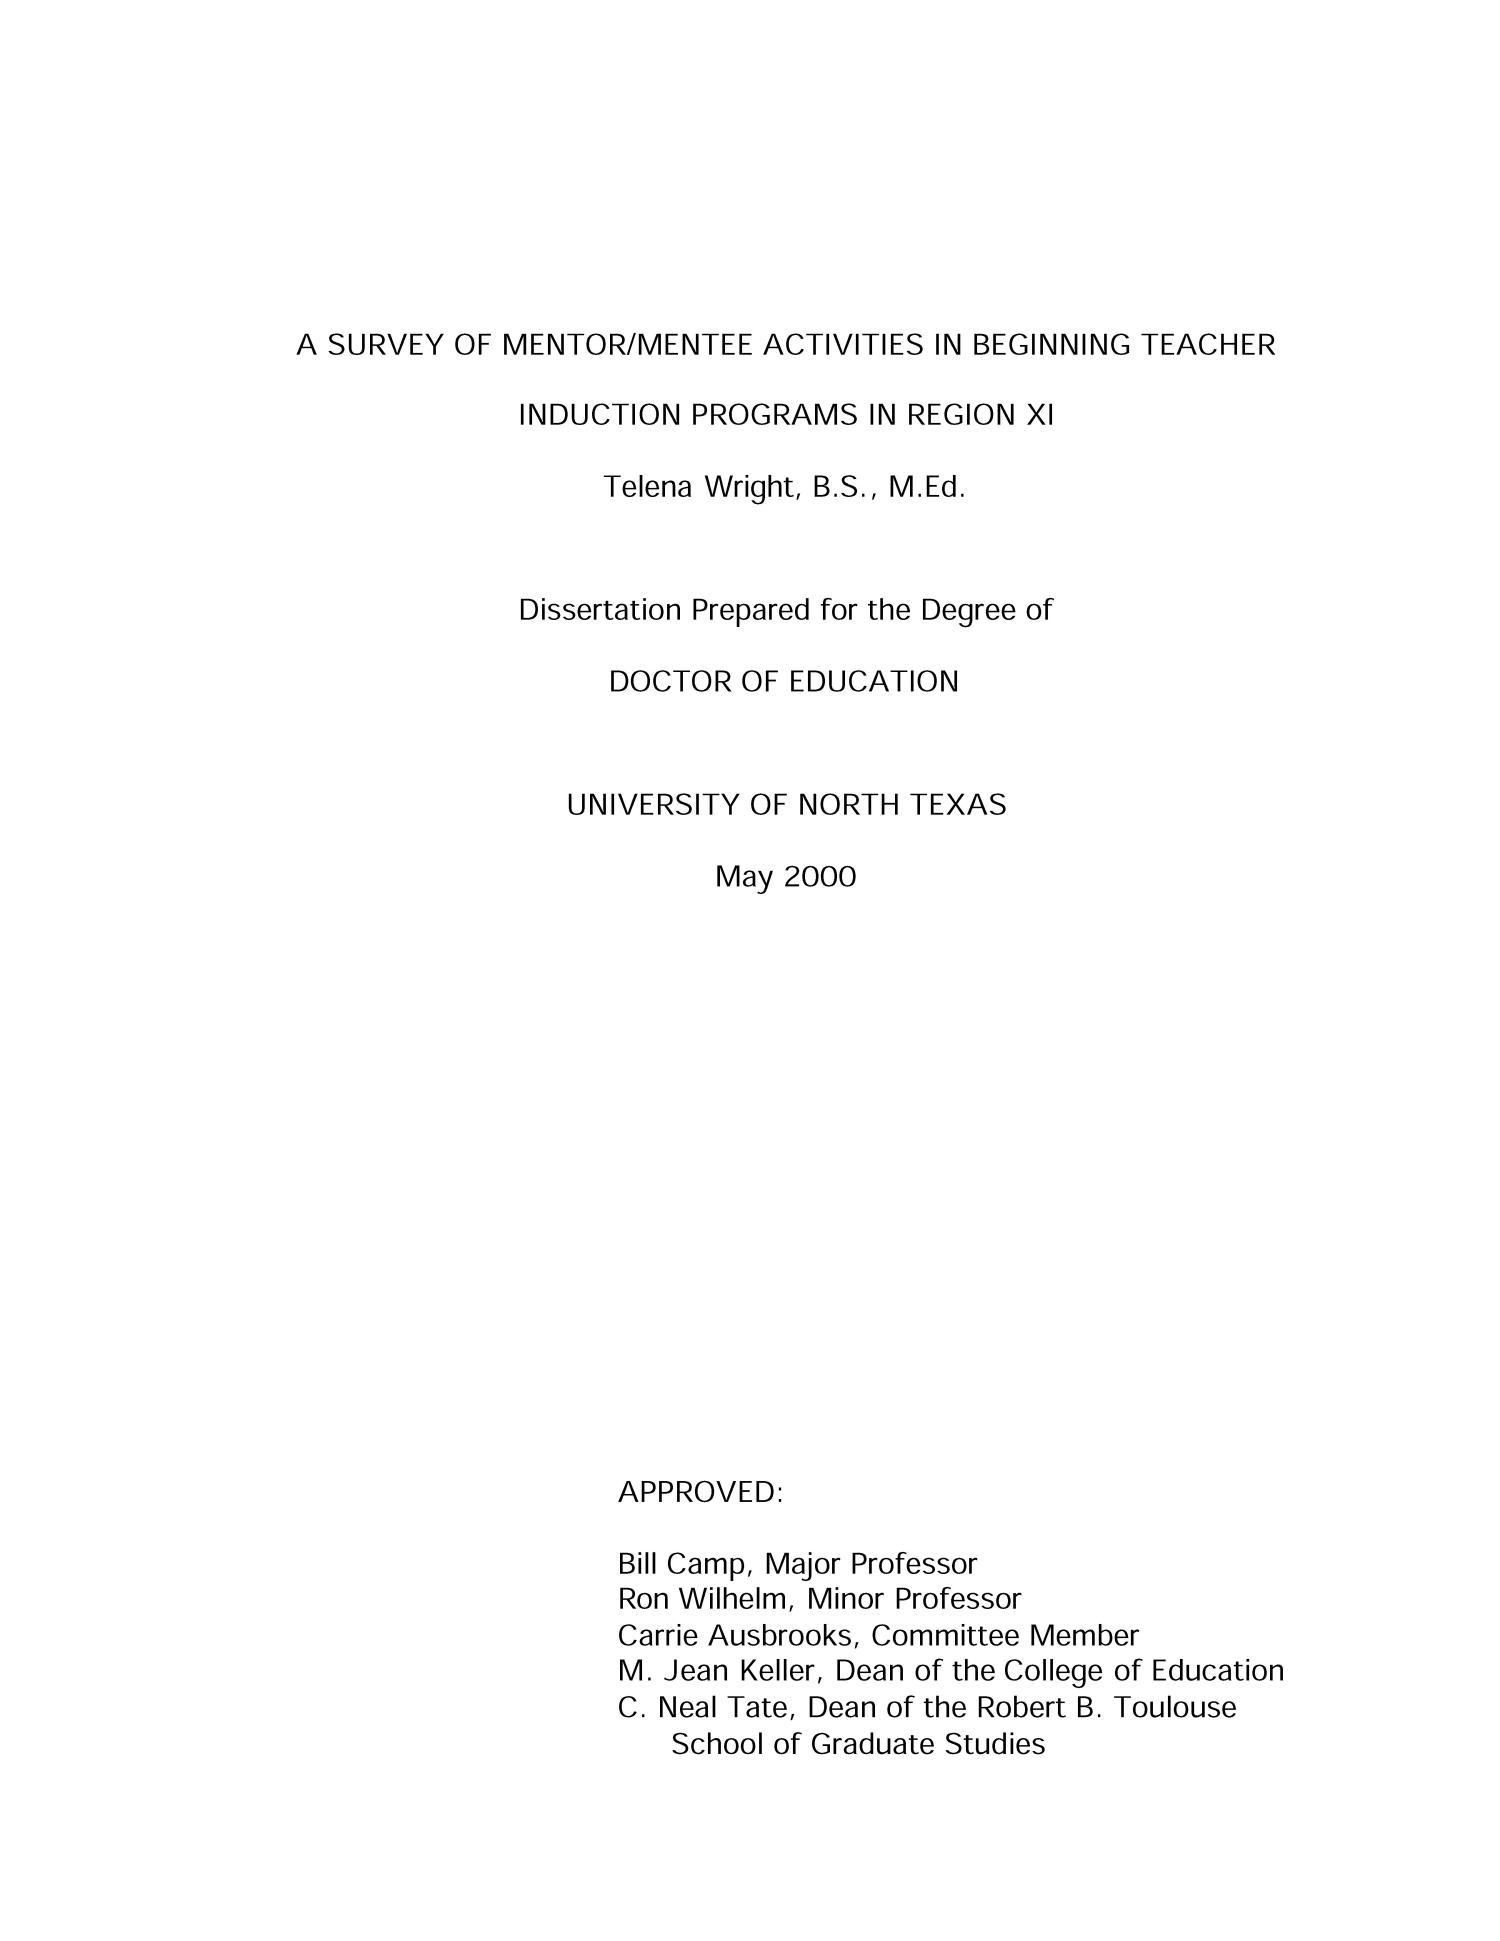 A survey of mentor/mentee activities in beginning teacher induction programs in Region XI                                                                                                      Title Page